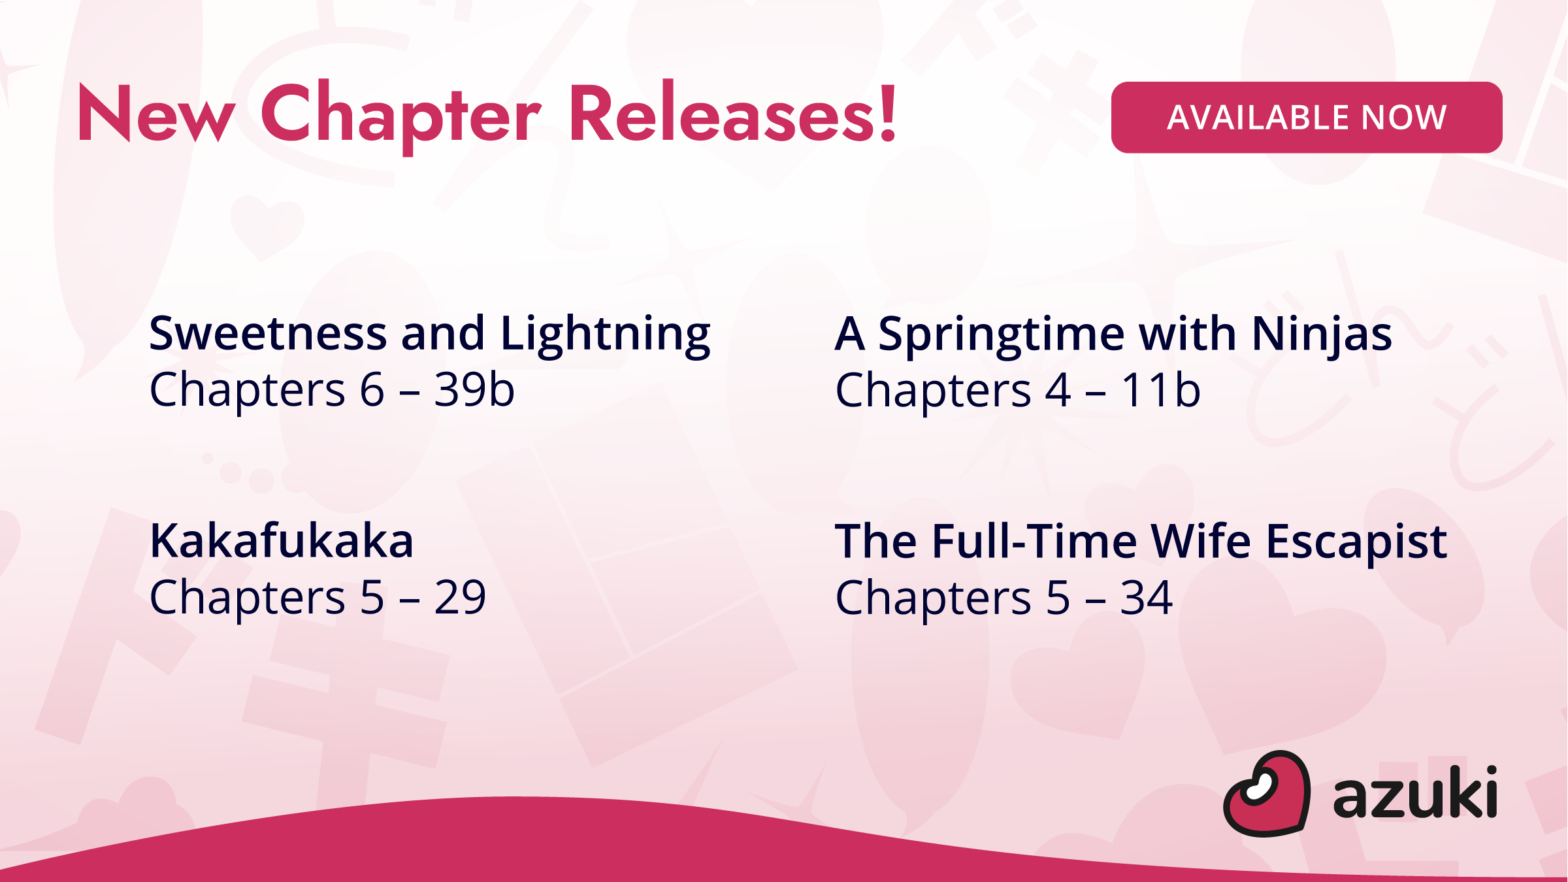 New Chapter Releases! Available now. Sweetness and Lightning Chapters 6 through 39b. A Springtime with Ninjas Chapters 4 through 11b. Kakafukaka Chapters 5 through 29. The Full-Time Wife Escapist Chapters 5 through 34. On Azuki.